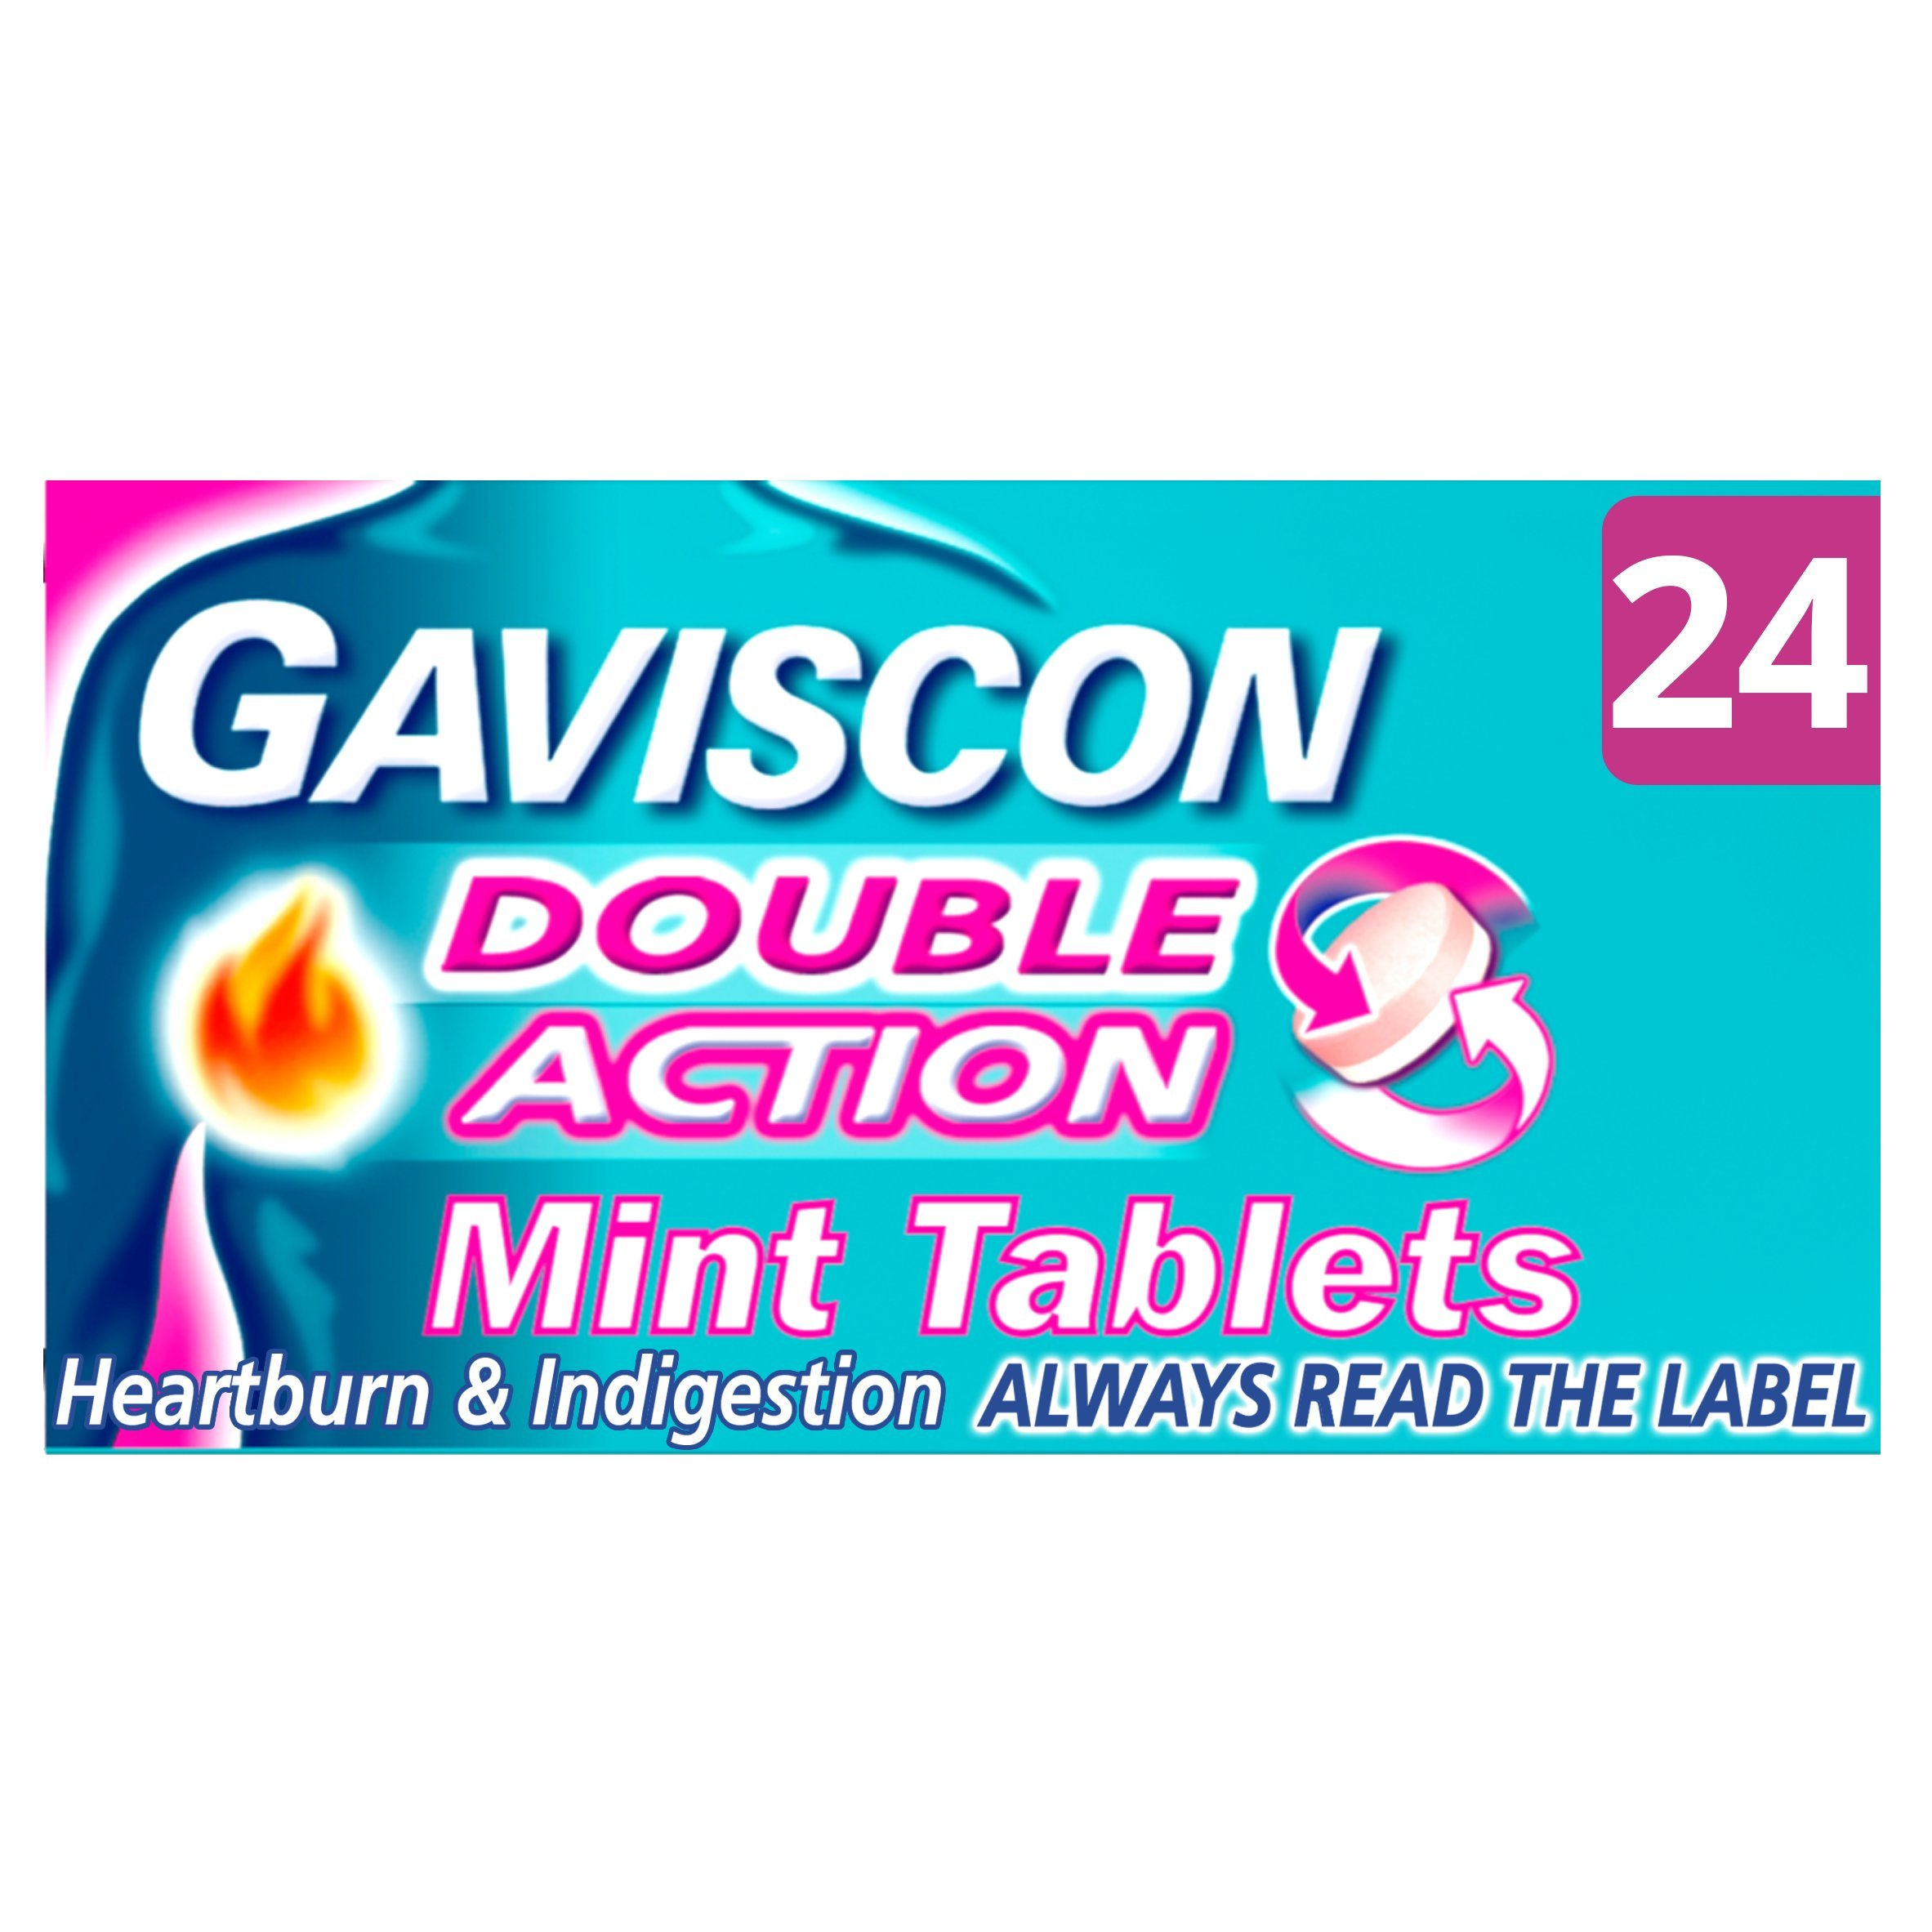 Gaviscon Double Action Mint Tablets, Pack of 24 Tablets